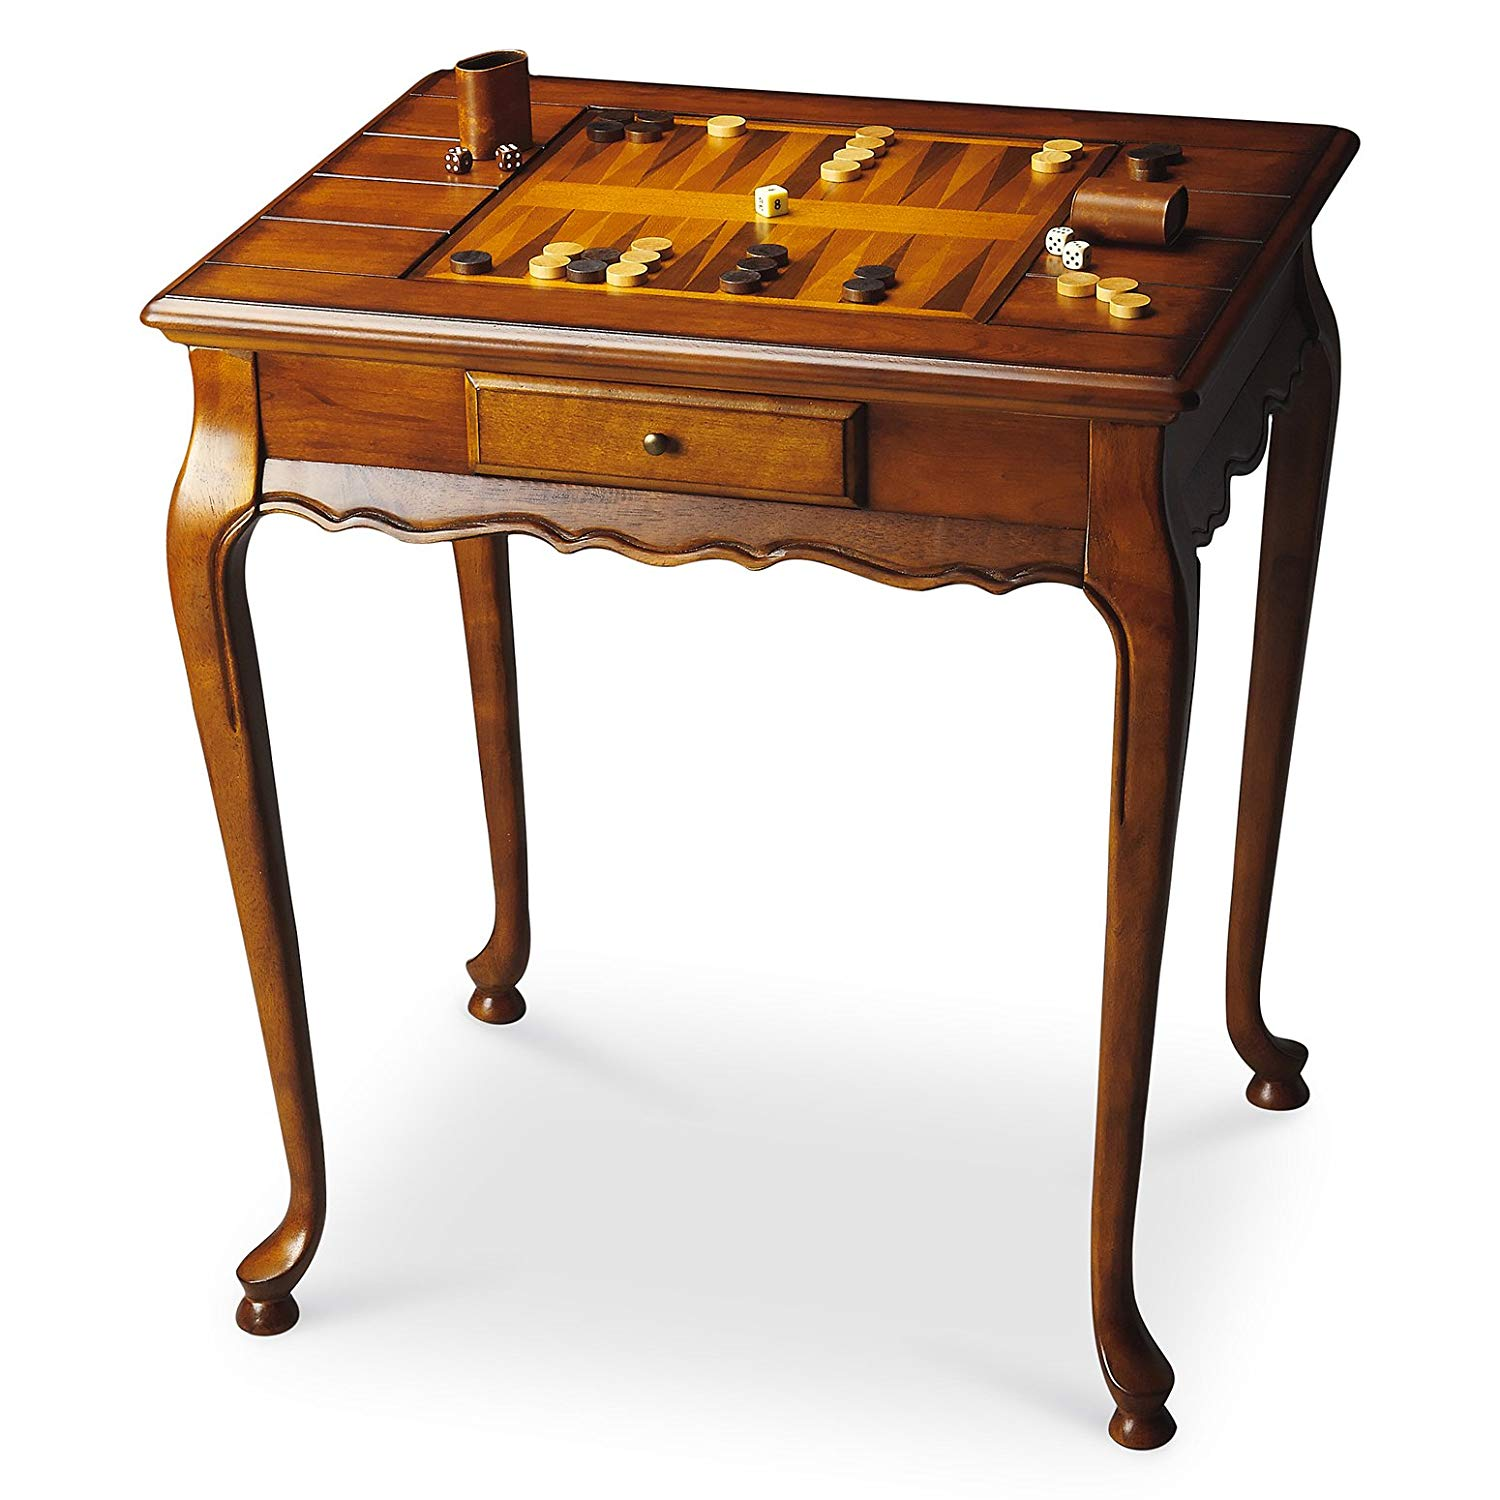 tables wellington game table olive ash burl chess wood accent checkers backgammon furniture kitchen dining and glass coffee sets large drop leaf battery operated hanging lamp